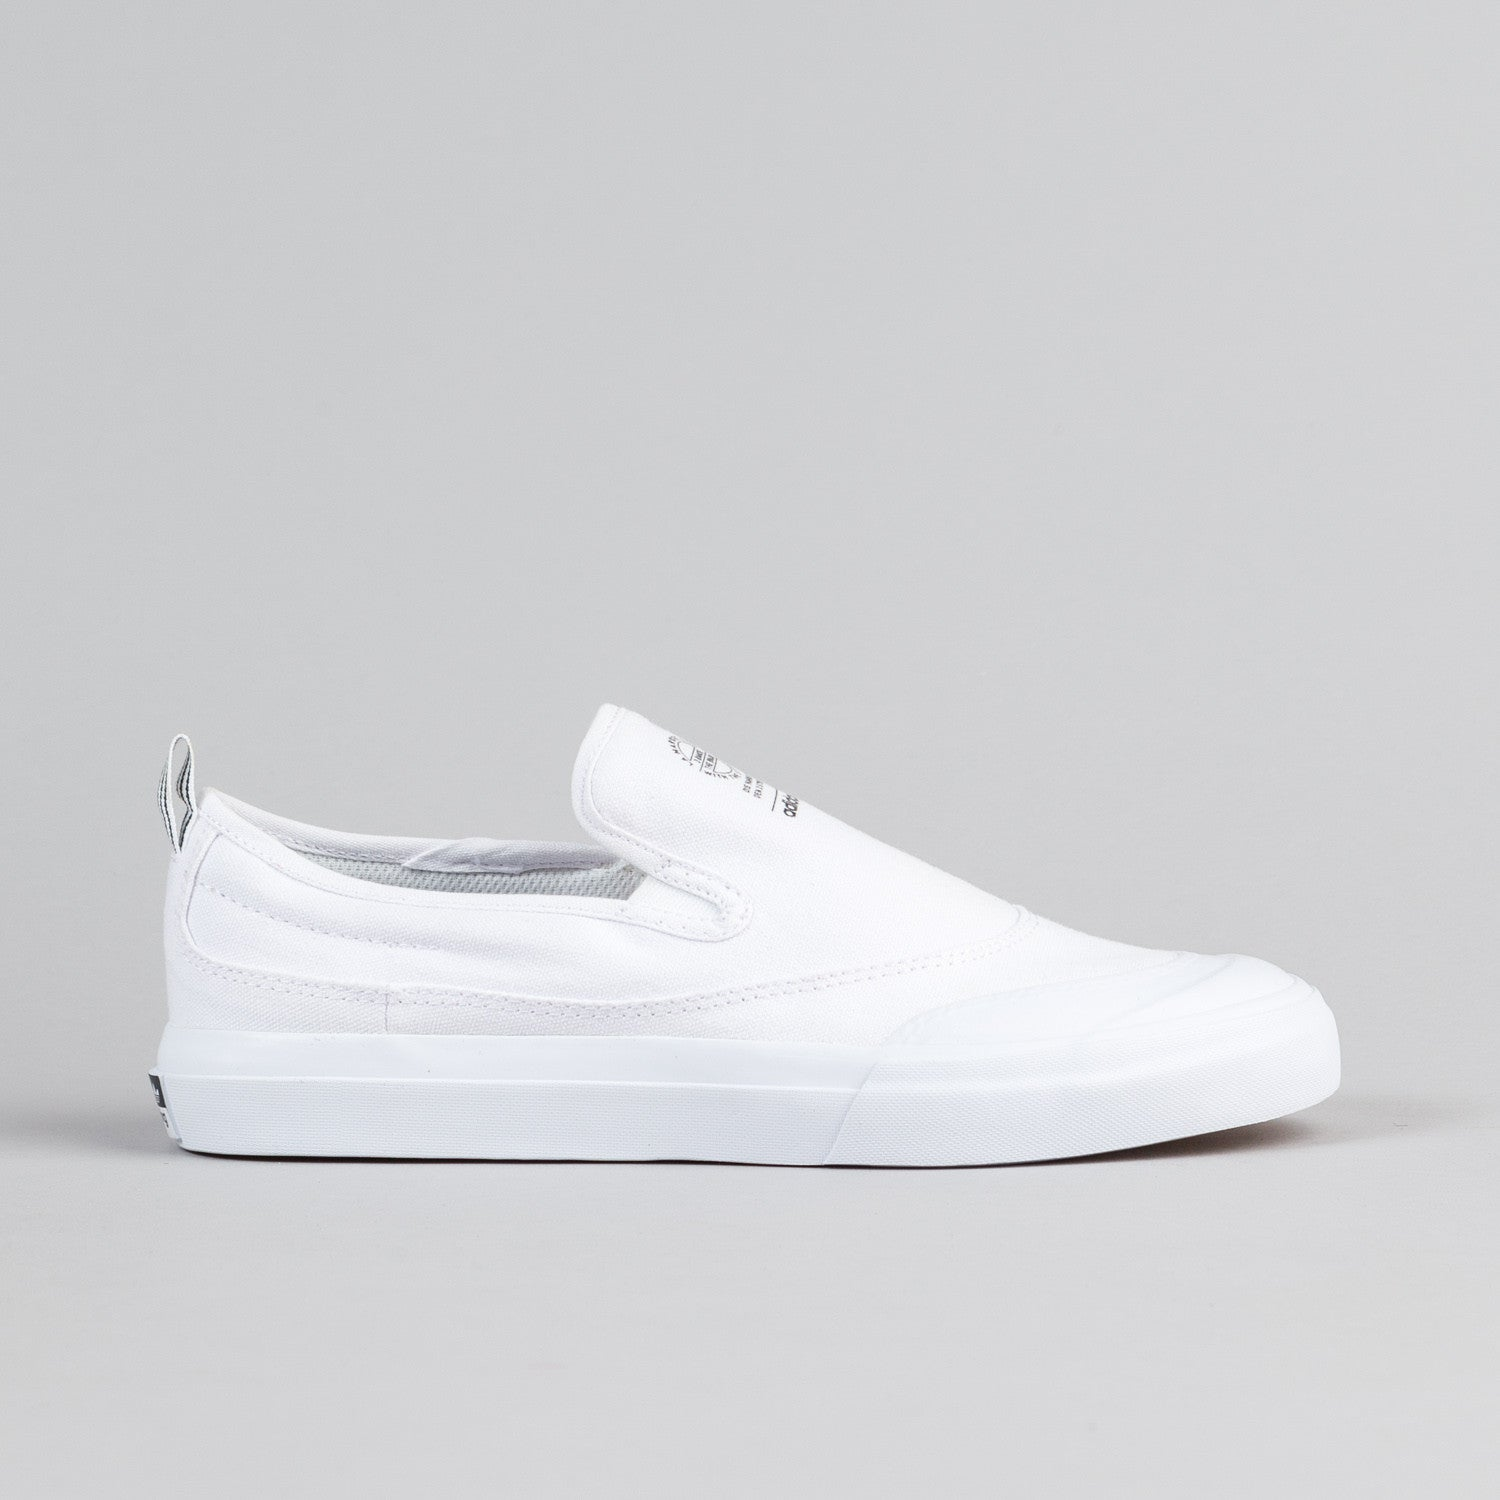 Adidas Matchcourt Slip On Shoes